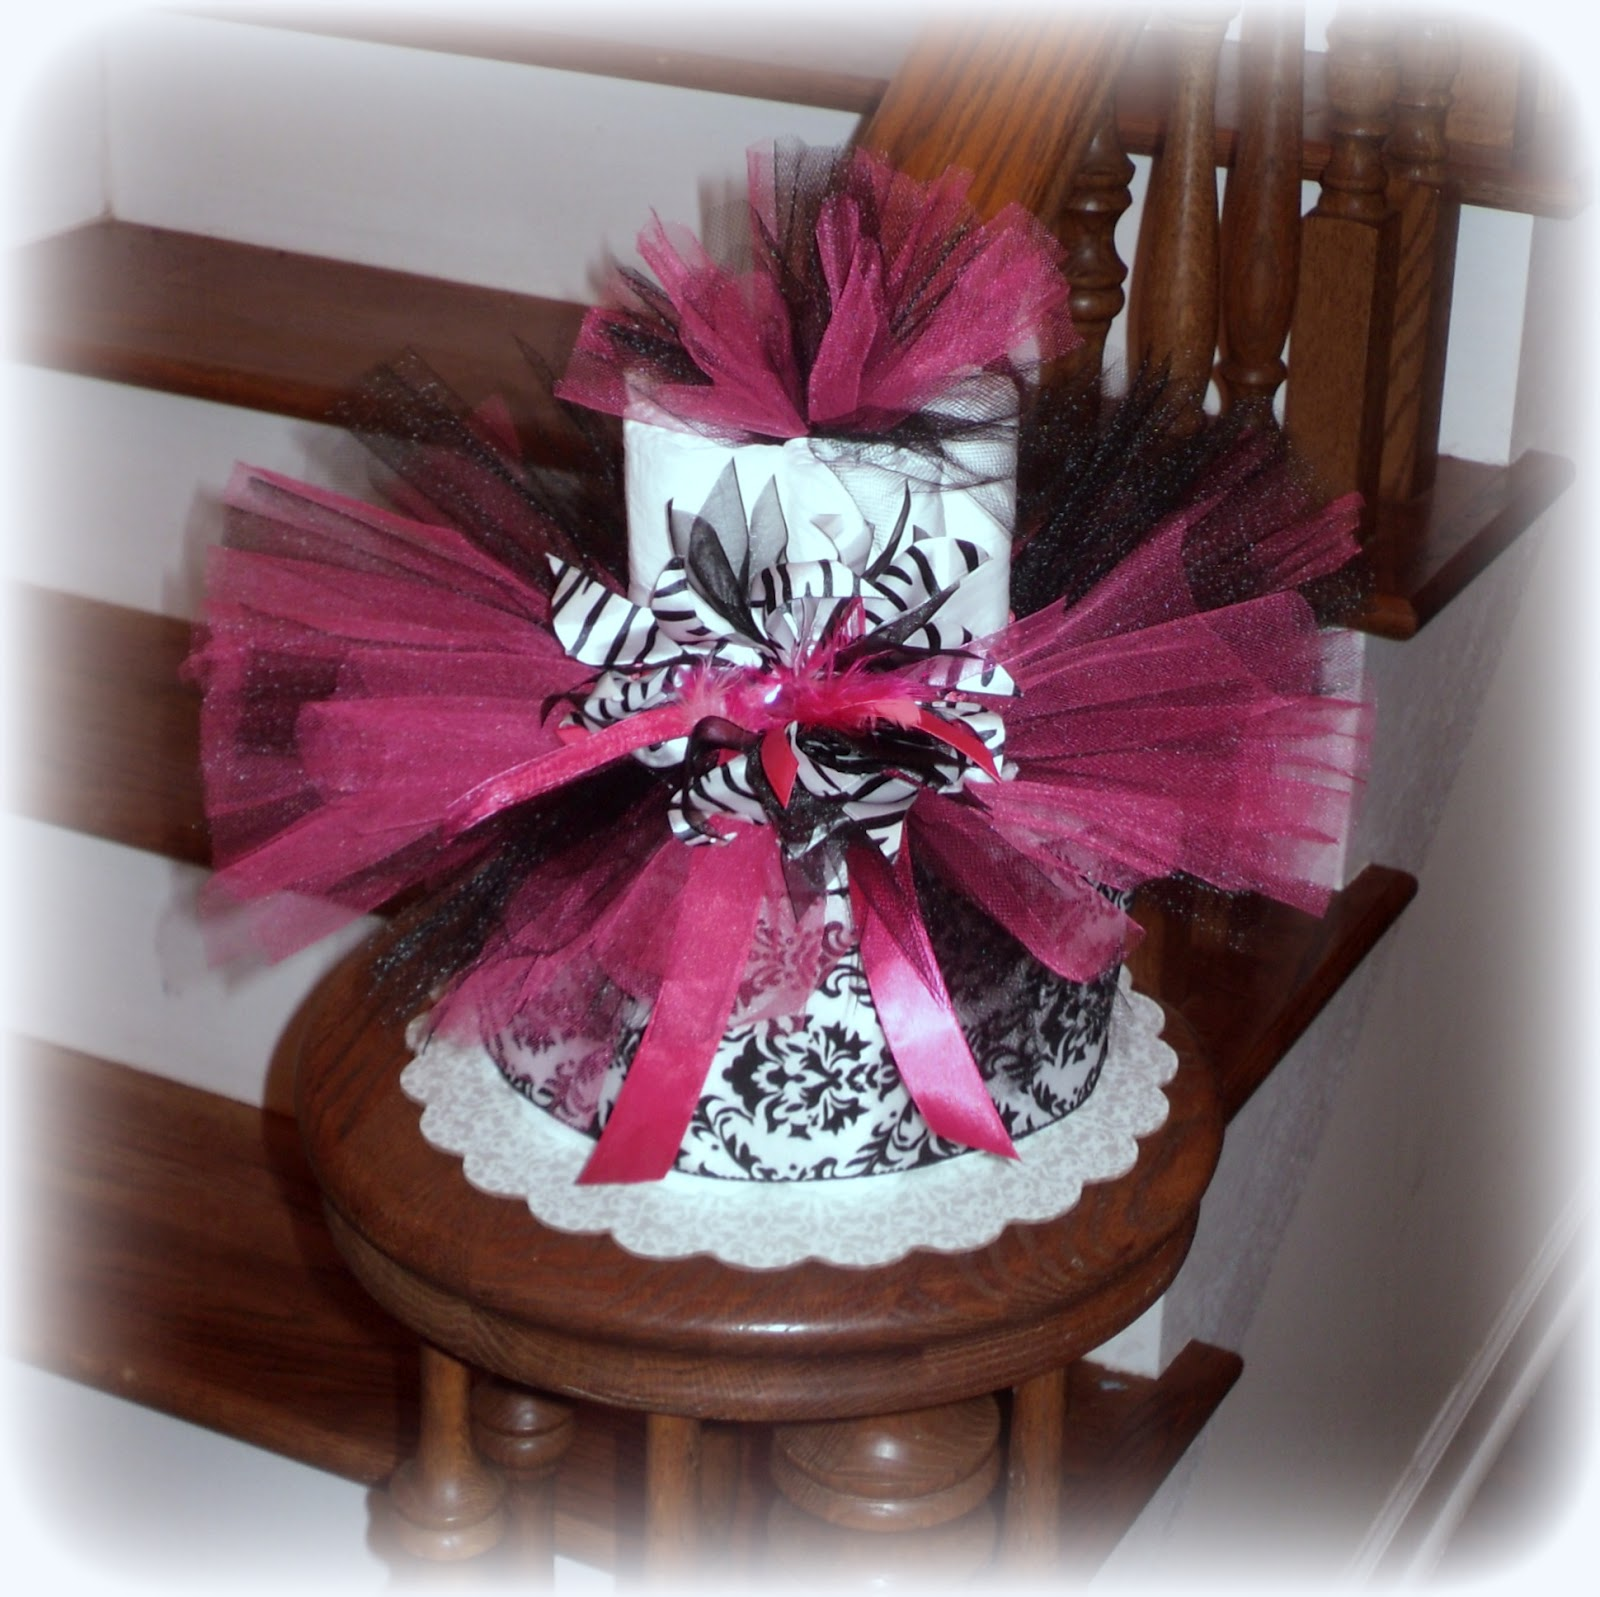 Diaper Cake Centerpiece For Baby Shower : Zebra Diaper Cake Baby Shower Centerpiece Gift Girl Ribbon ...